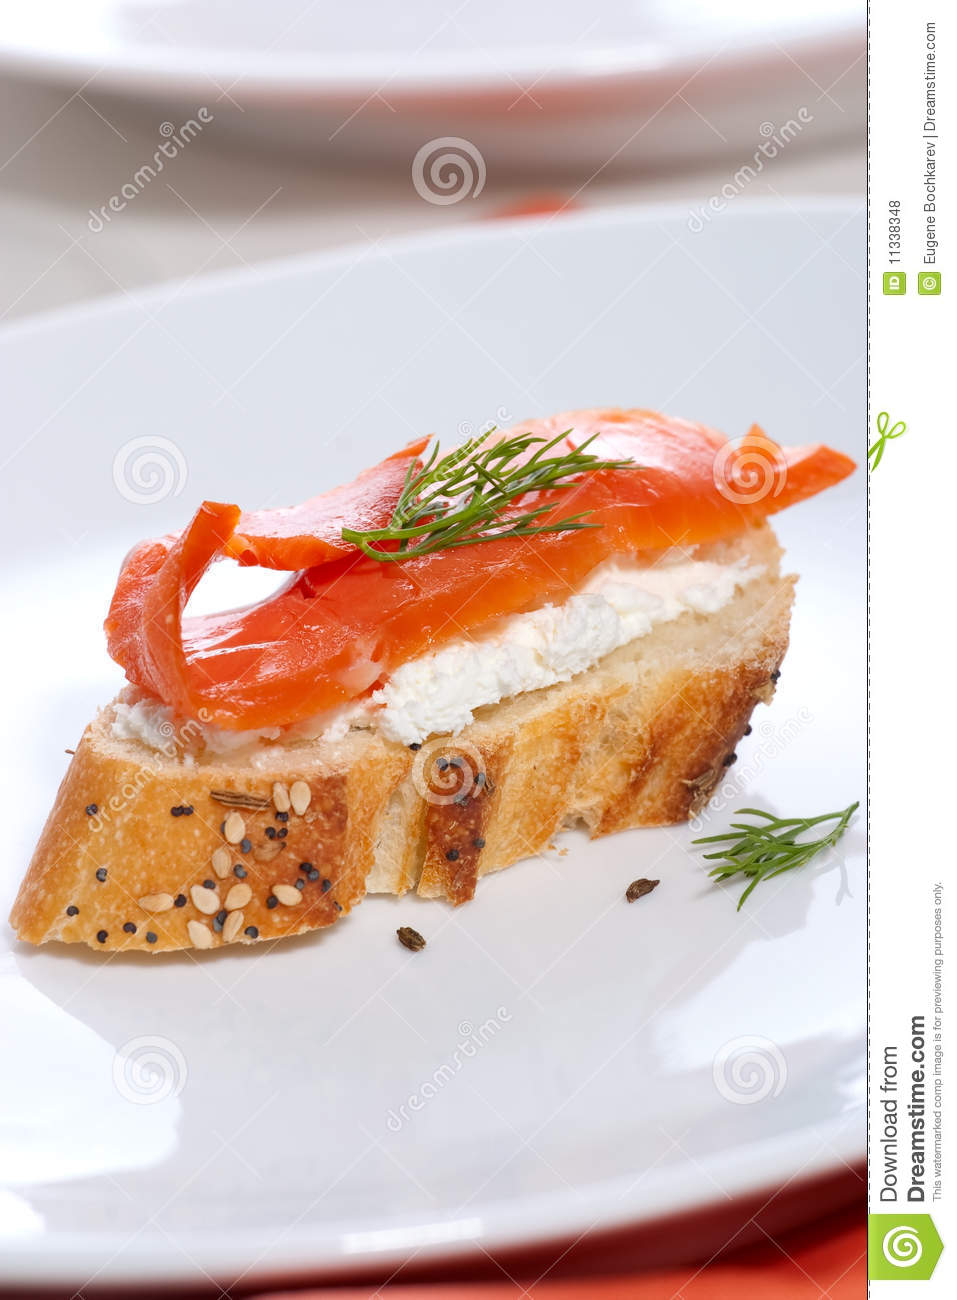 Salmon cheese canape royalty free stock photos image for Smoked salmon cream cheese canape